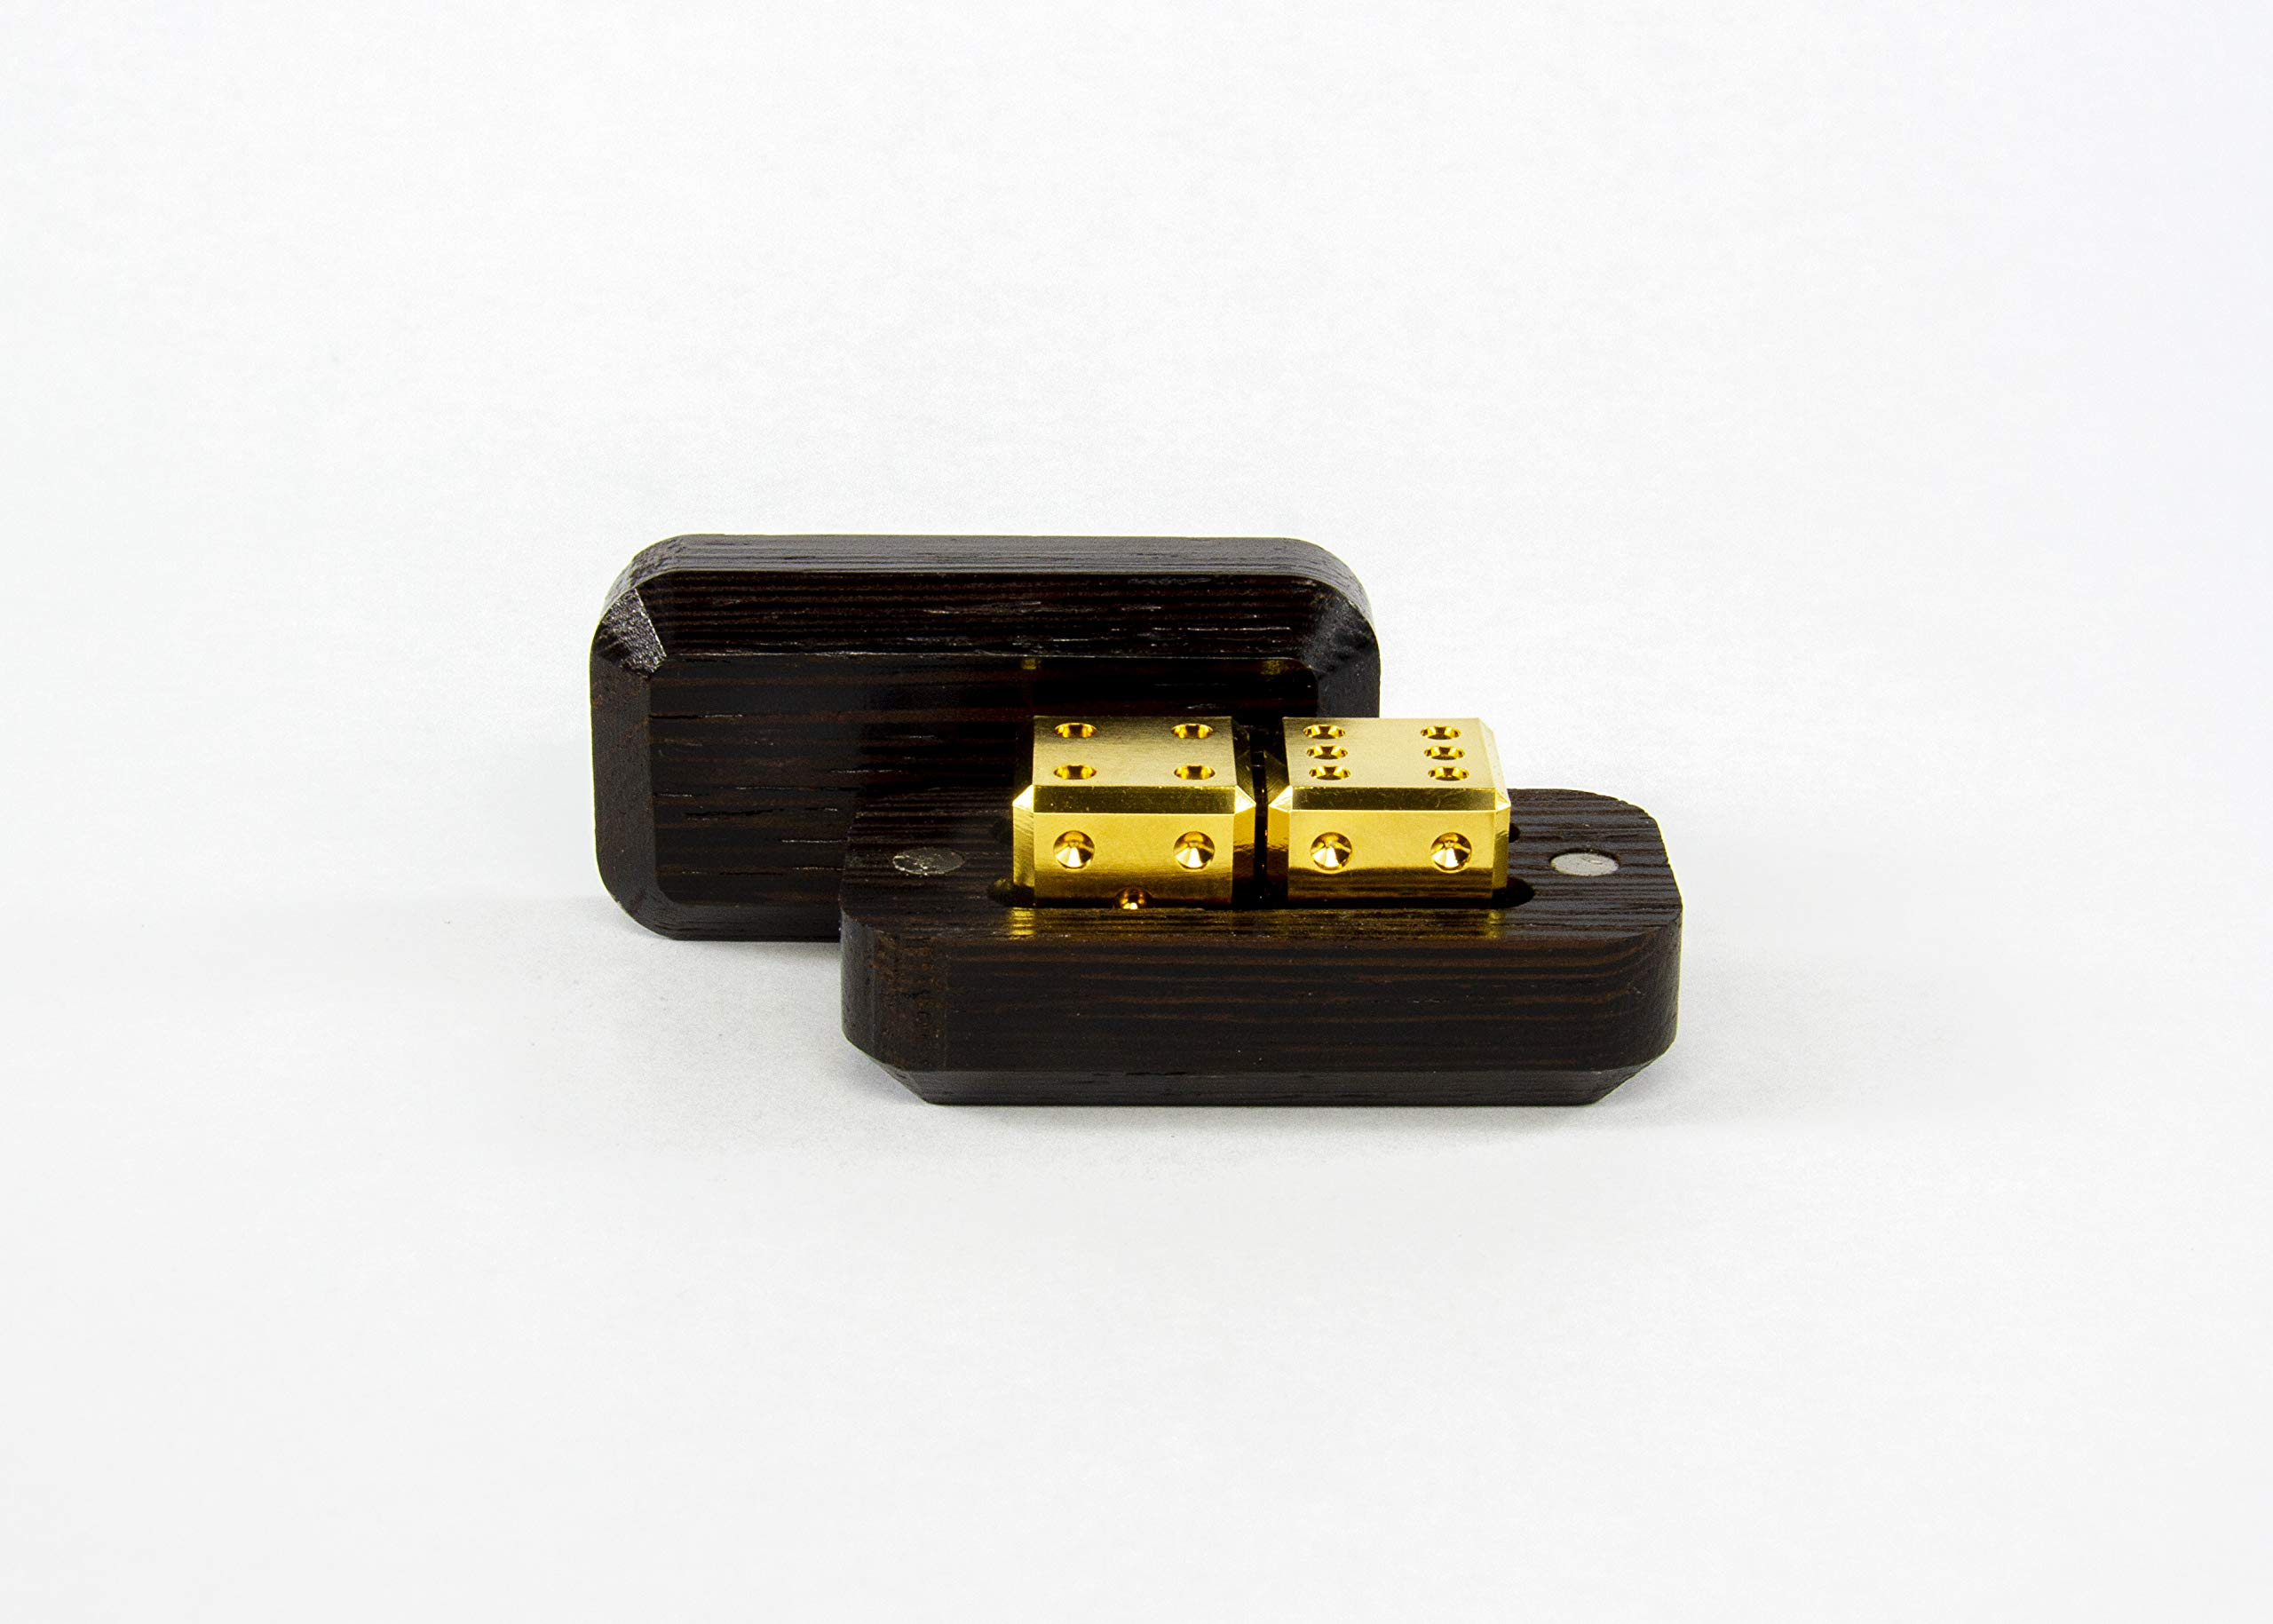 Gravity Dice Metal 2 Dice 14K Gold Set with Wenge Wood Case